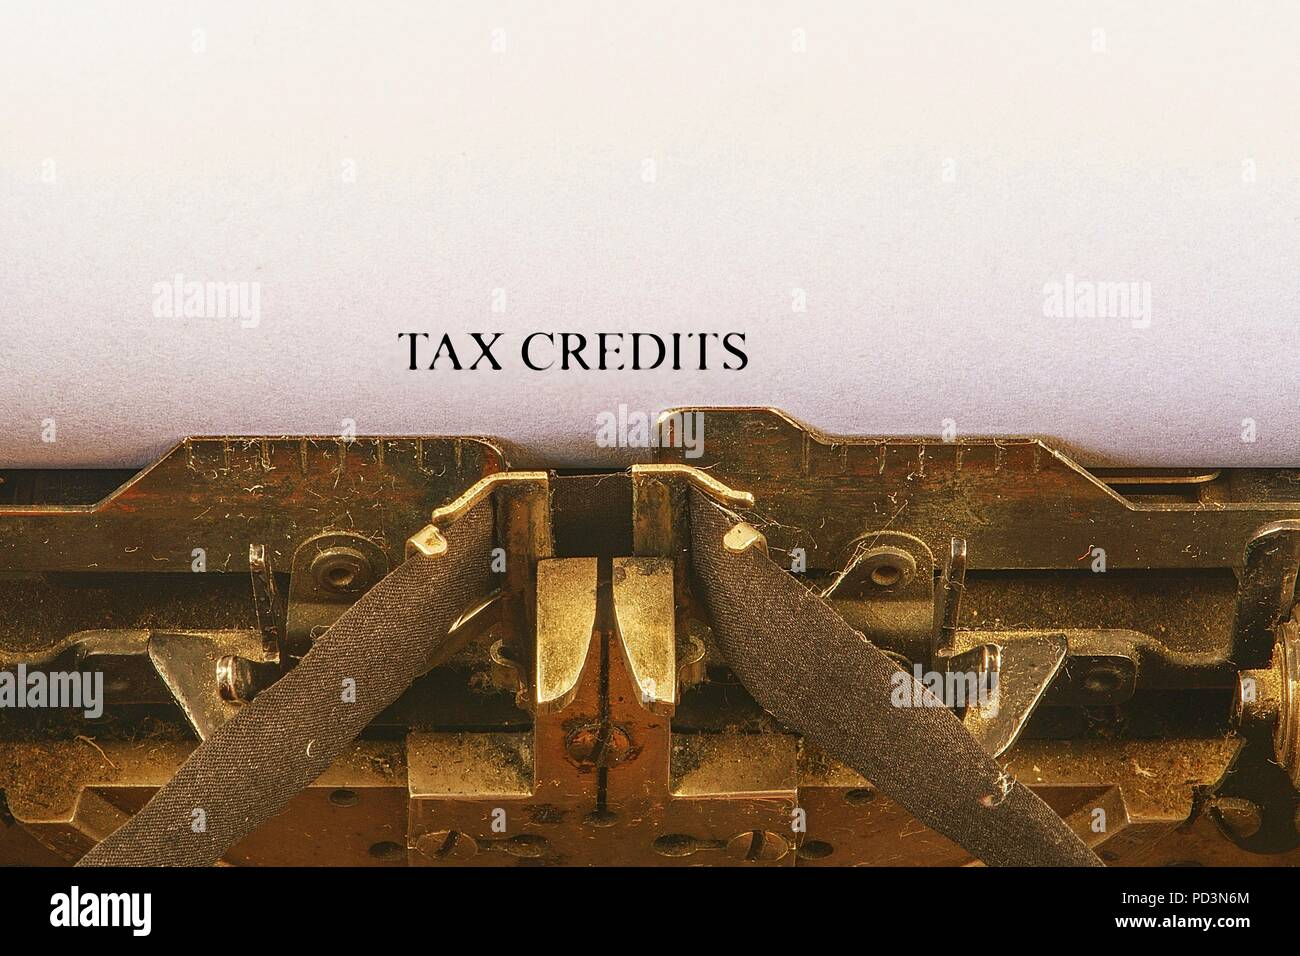 Closeup on vintage typewriter. Front focus on letters making TAX CREDITS text. Business concept image with retro office tool - Stock Image